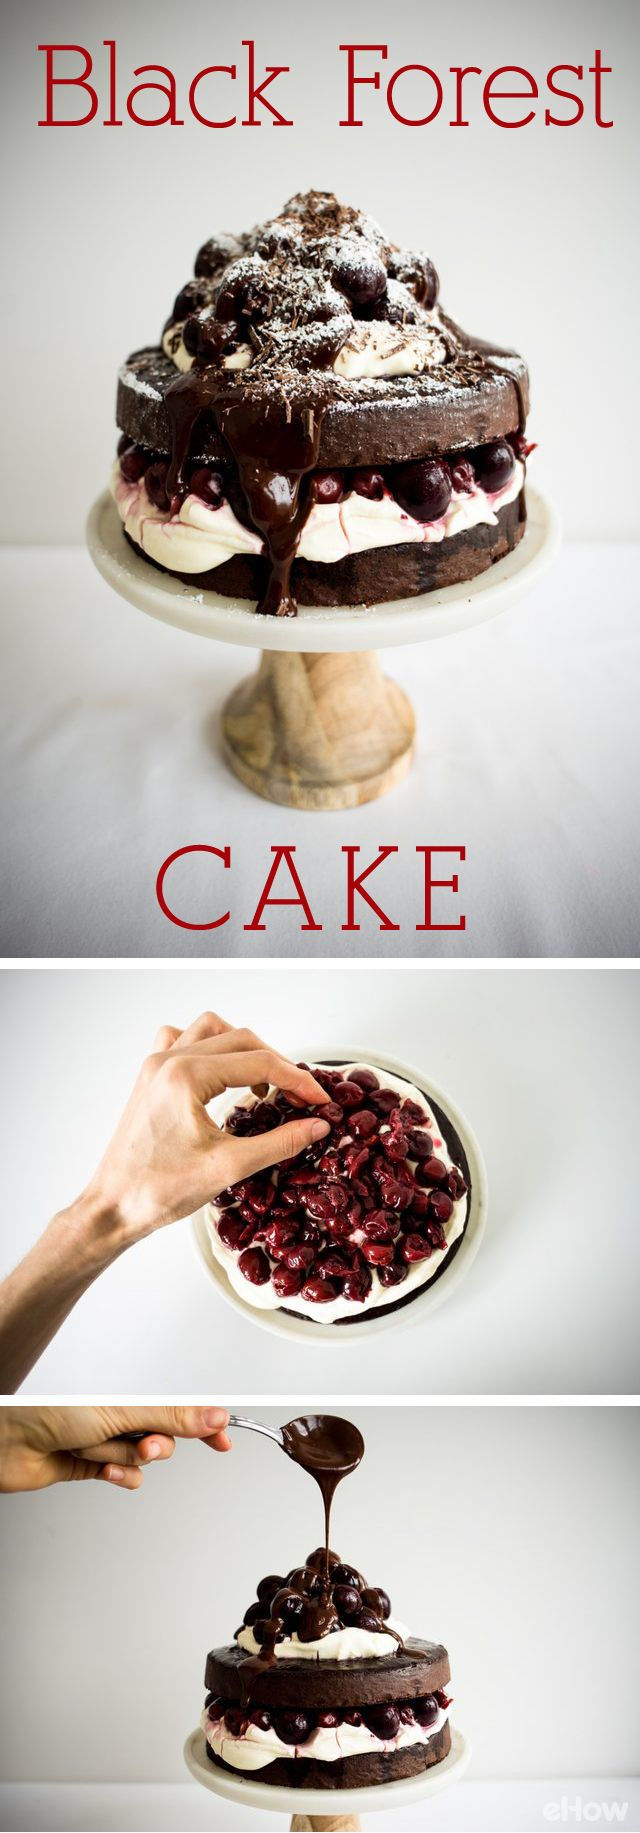 Black forest cake is the perfect combination of cherry and rich dark chocolate! Make this show-stopping cake with this easy to make recipe and how-to instructions: http://www.ehow.com/how_5604753_make-easy-black-forest-cake.html?utm_source=pinterest.com&utm_medium=referral&utm_content=freestyle&utm_campaign=fanpage